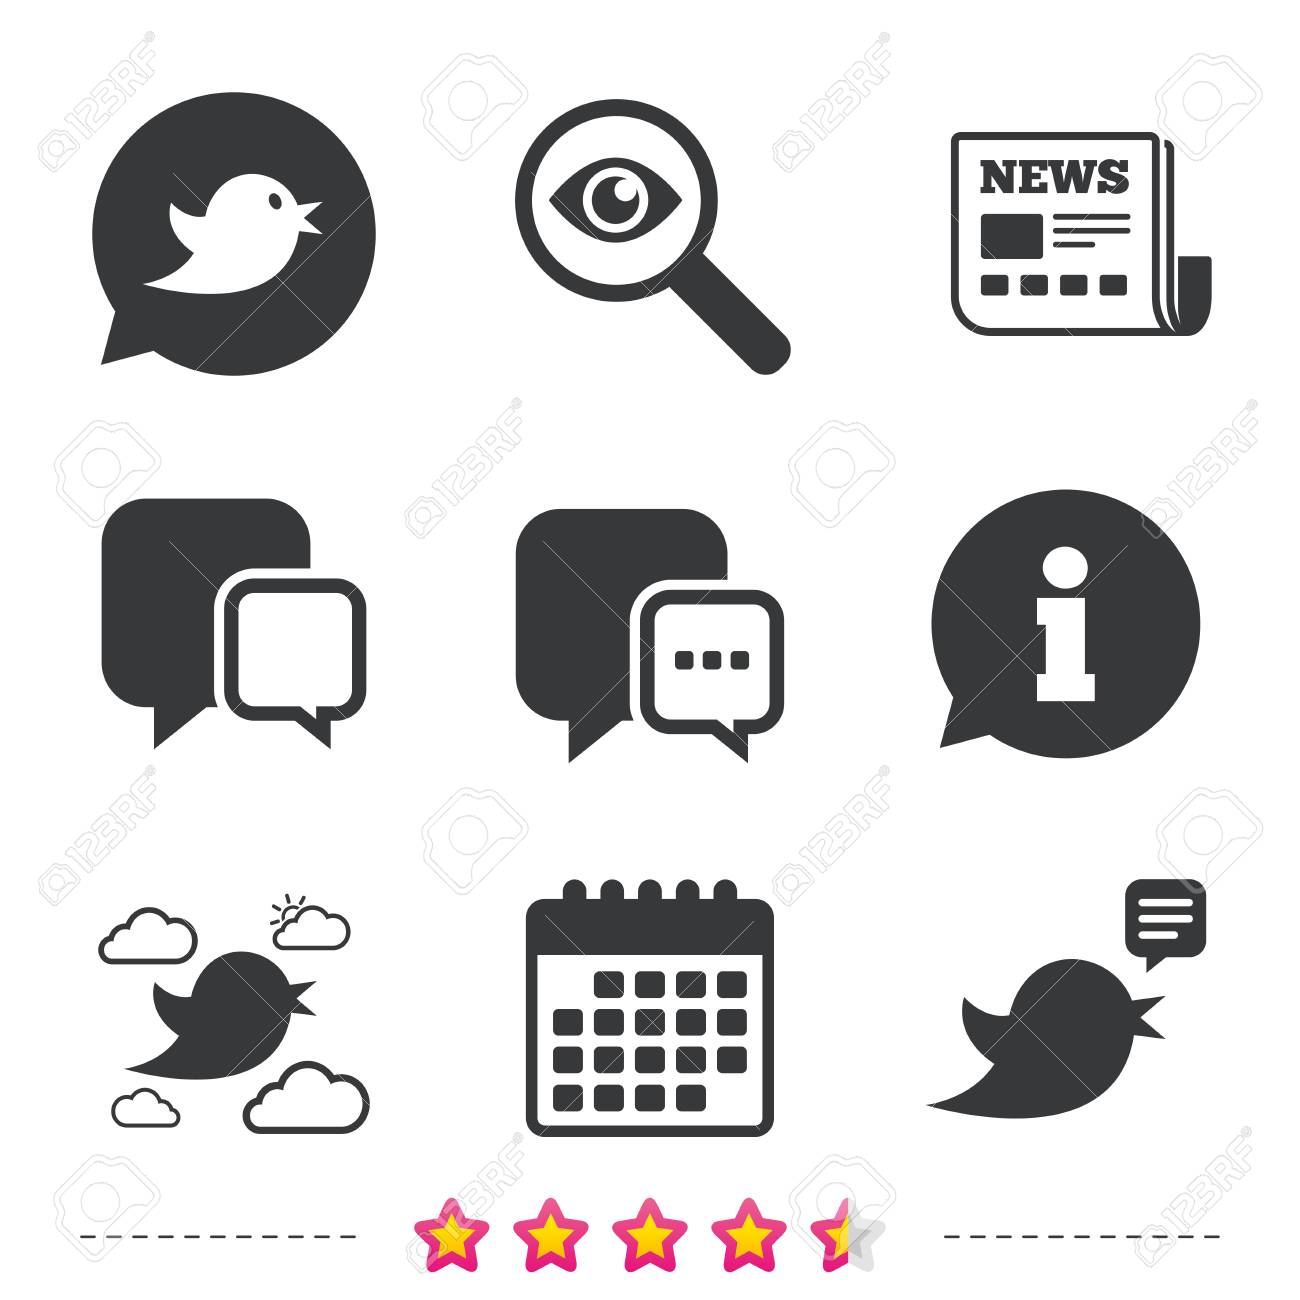 birds icons social media speech bubble chat bubble with three